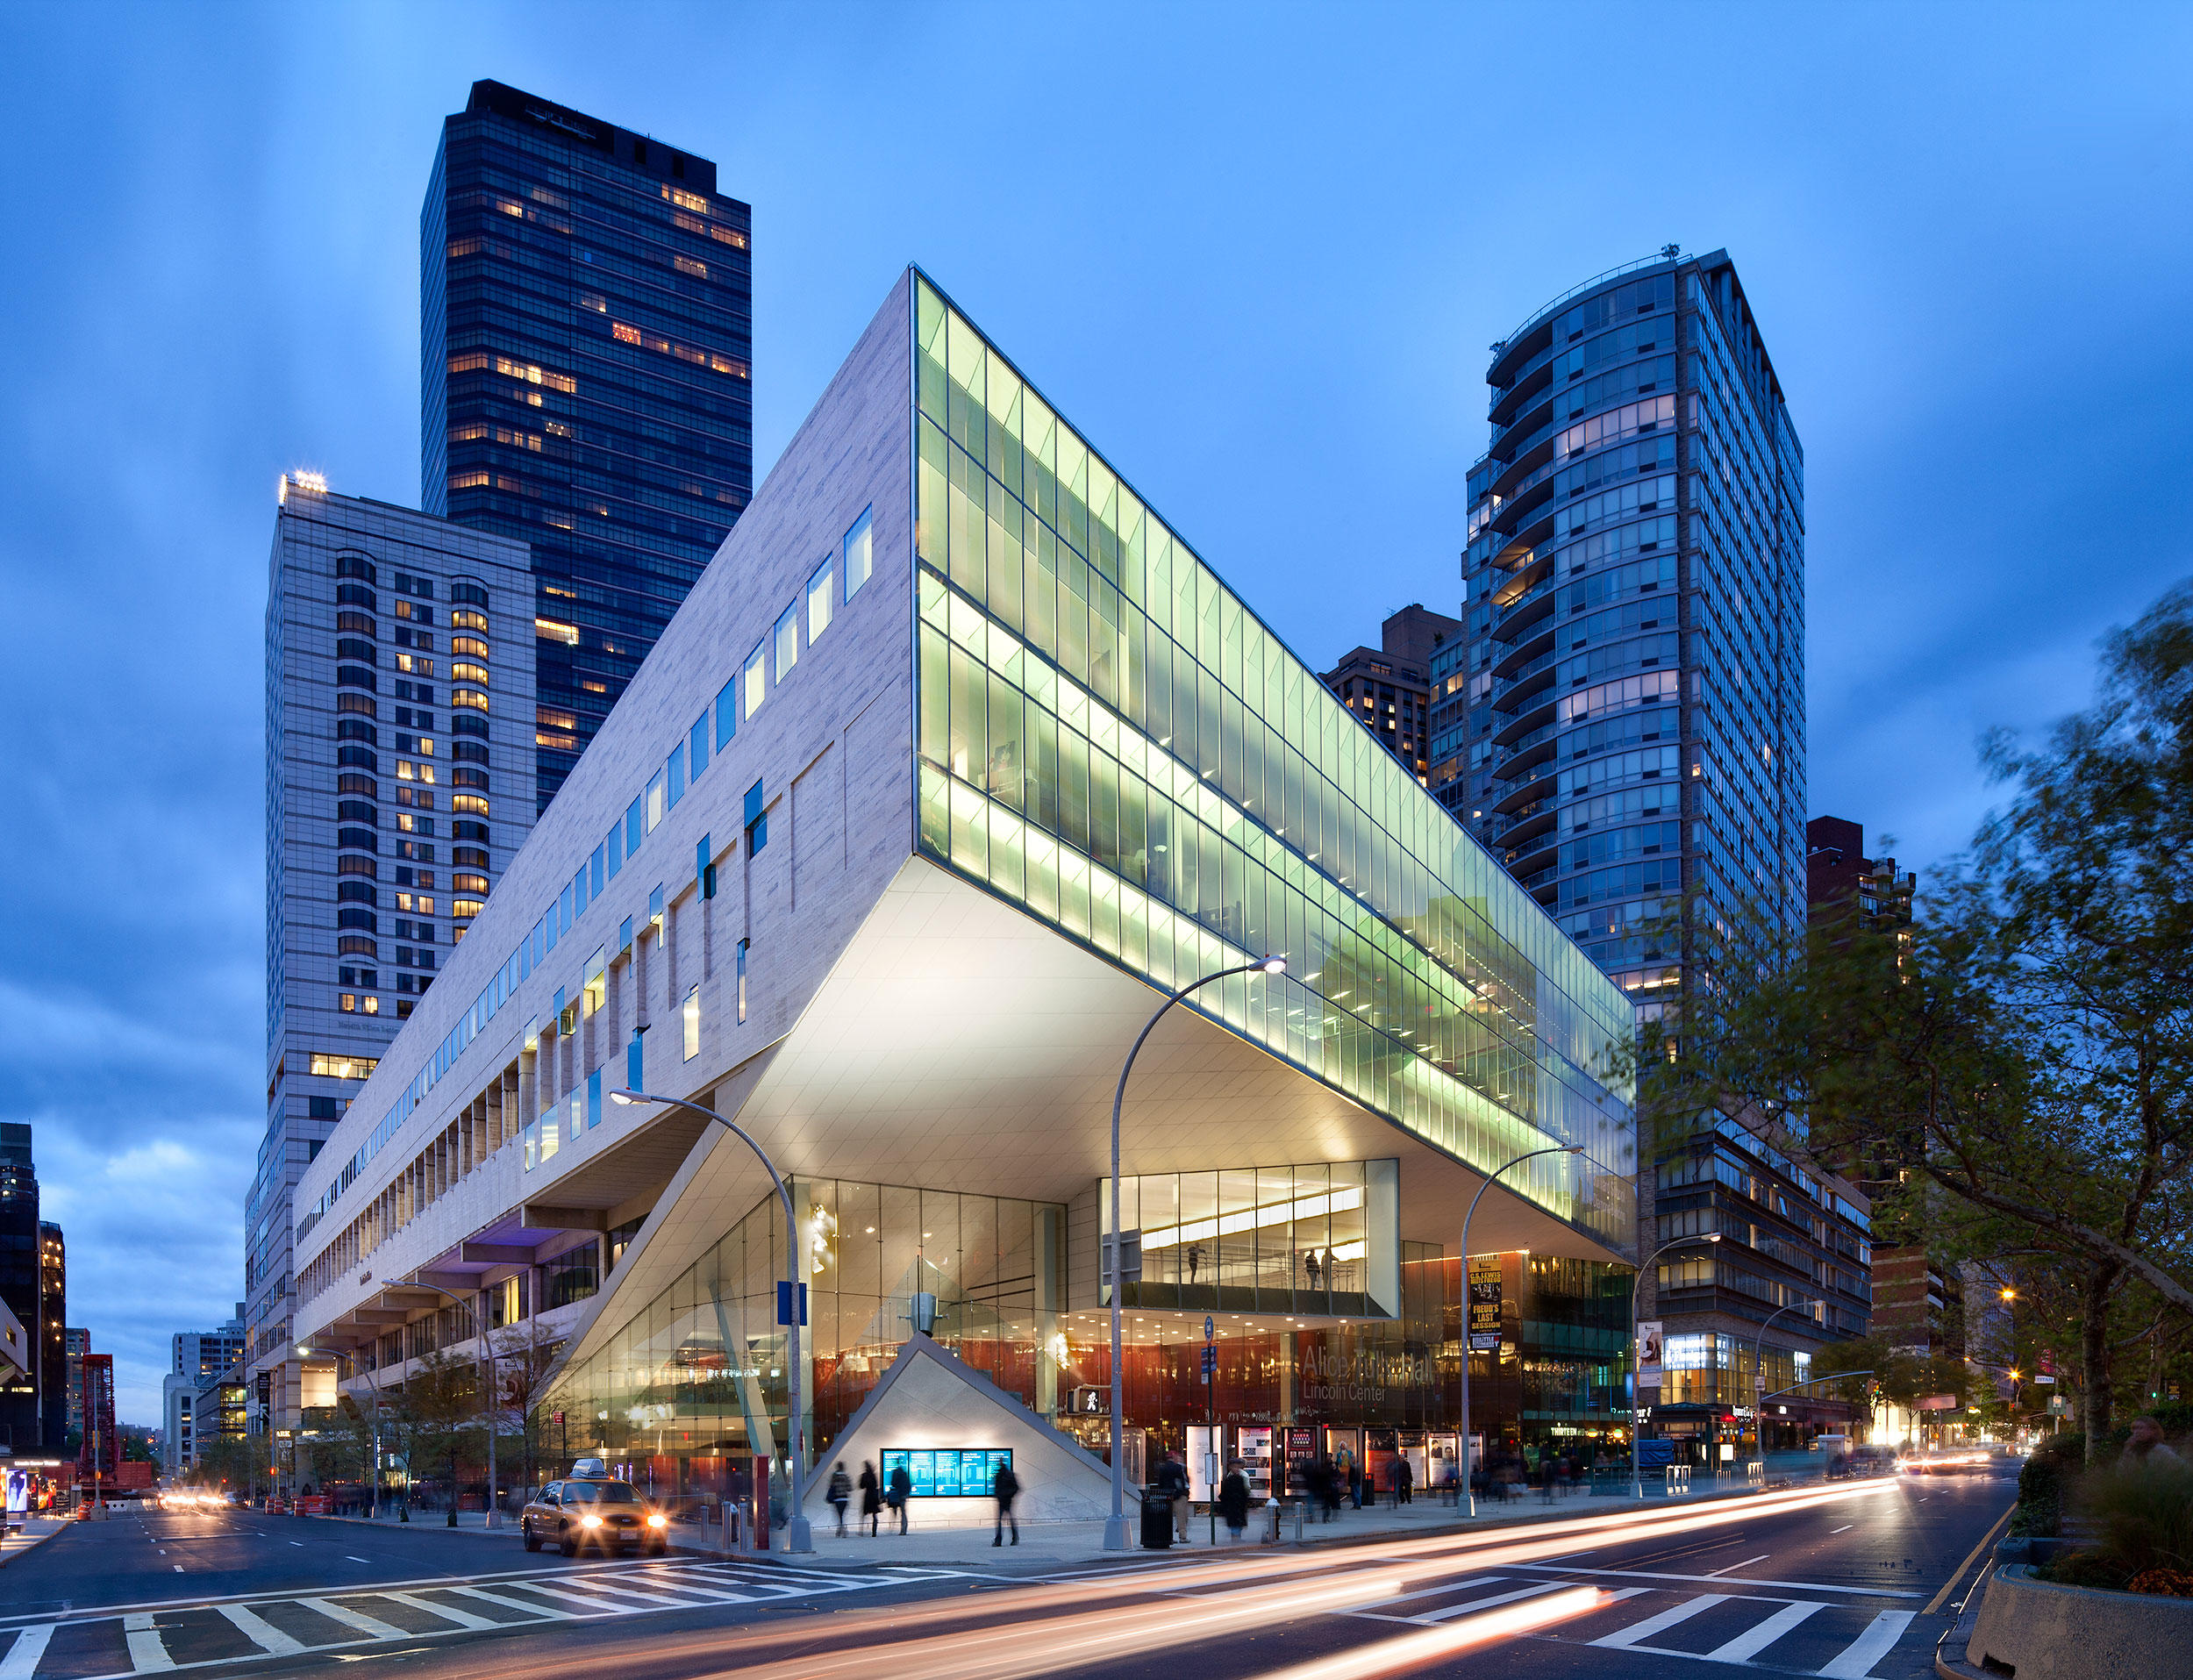 The Juilliard School, New York City, Architecture, Modern Design